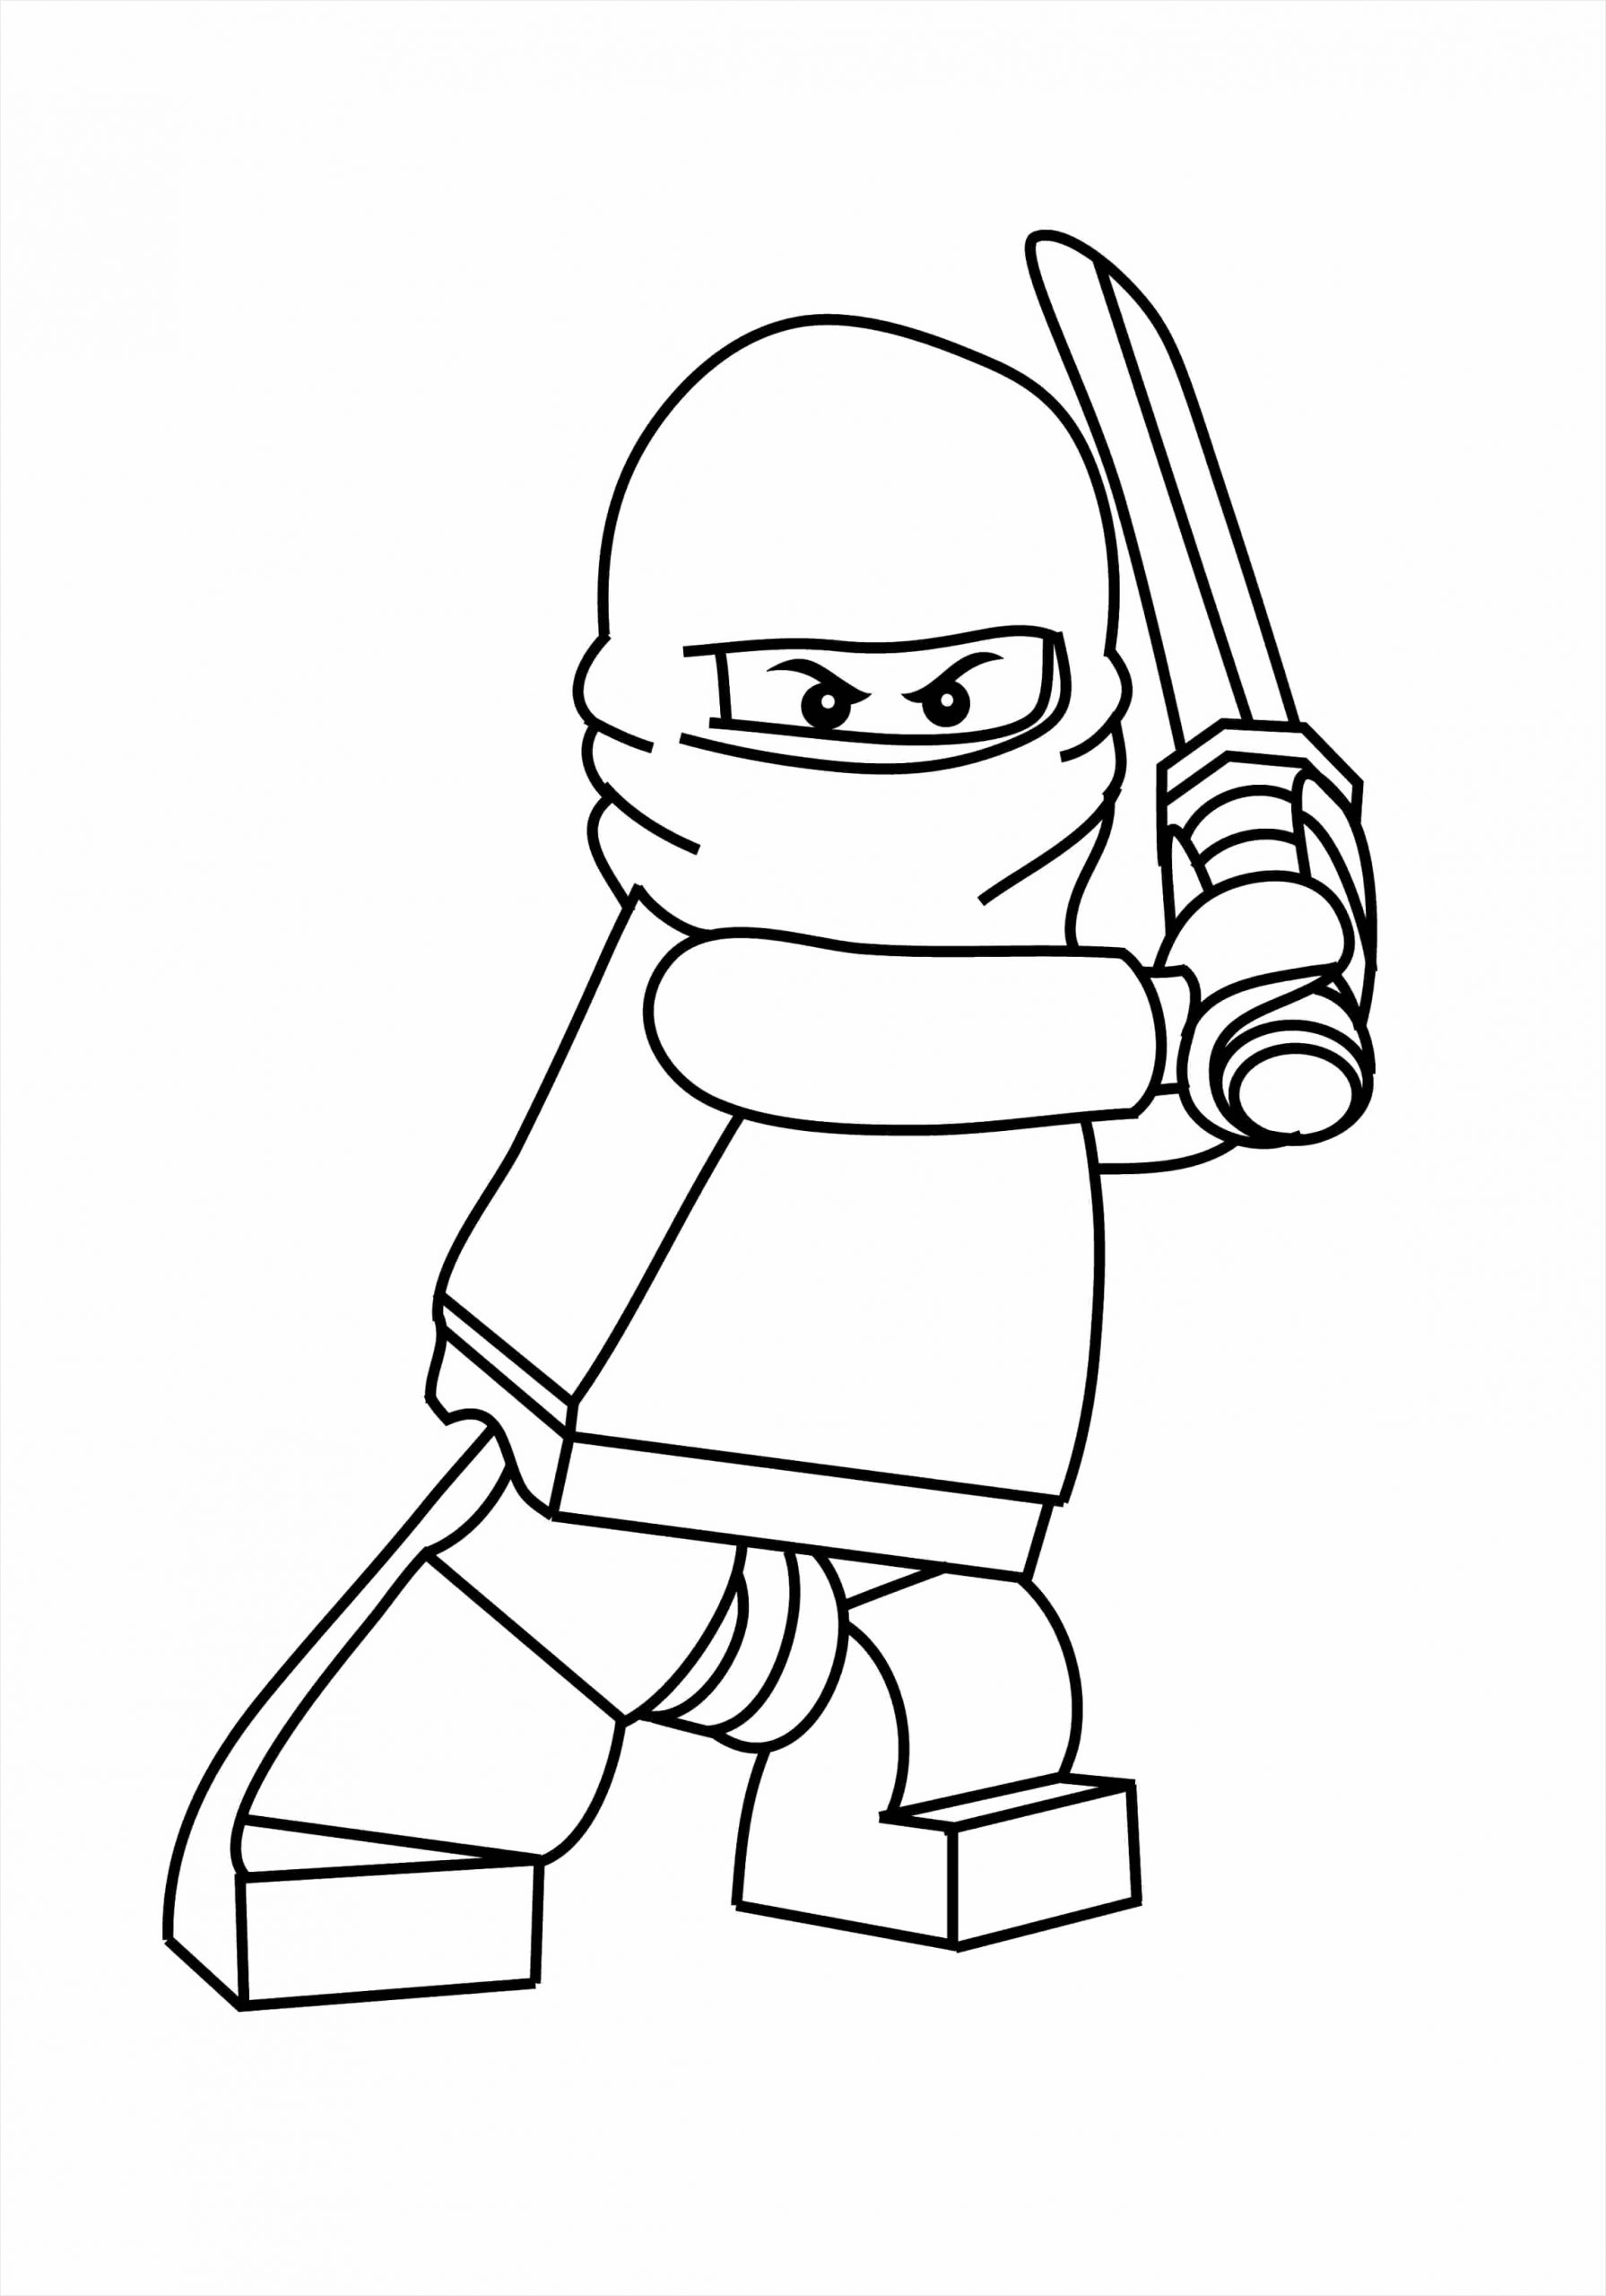 lego ninjago coloring pages free lego party on pinterest lego parties lego birthday free ninjago coloring pages lego uyiea